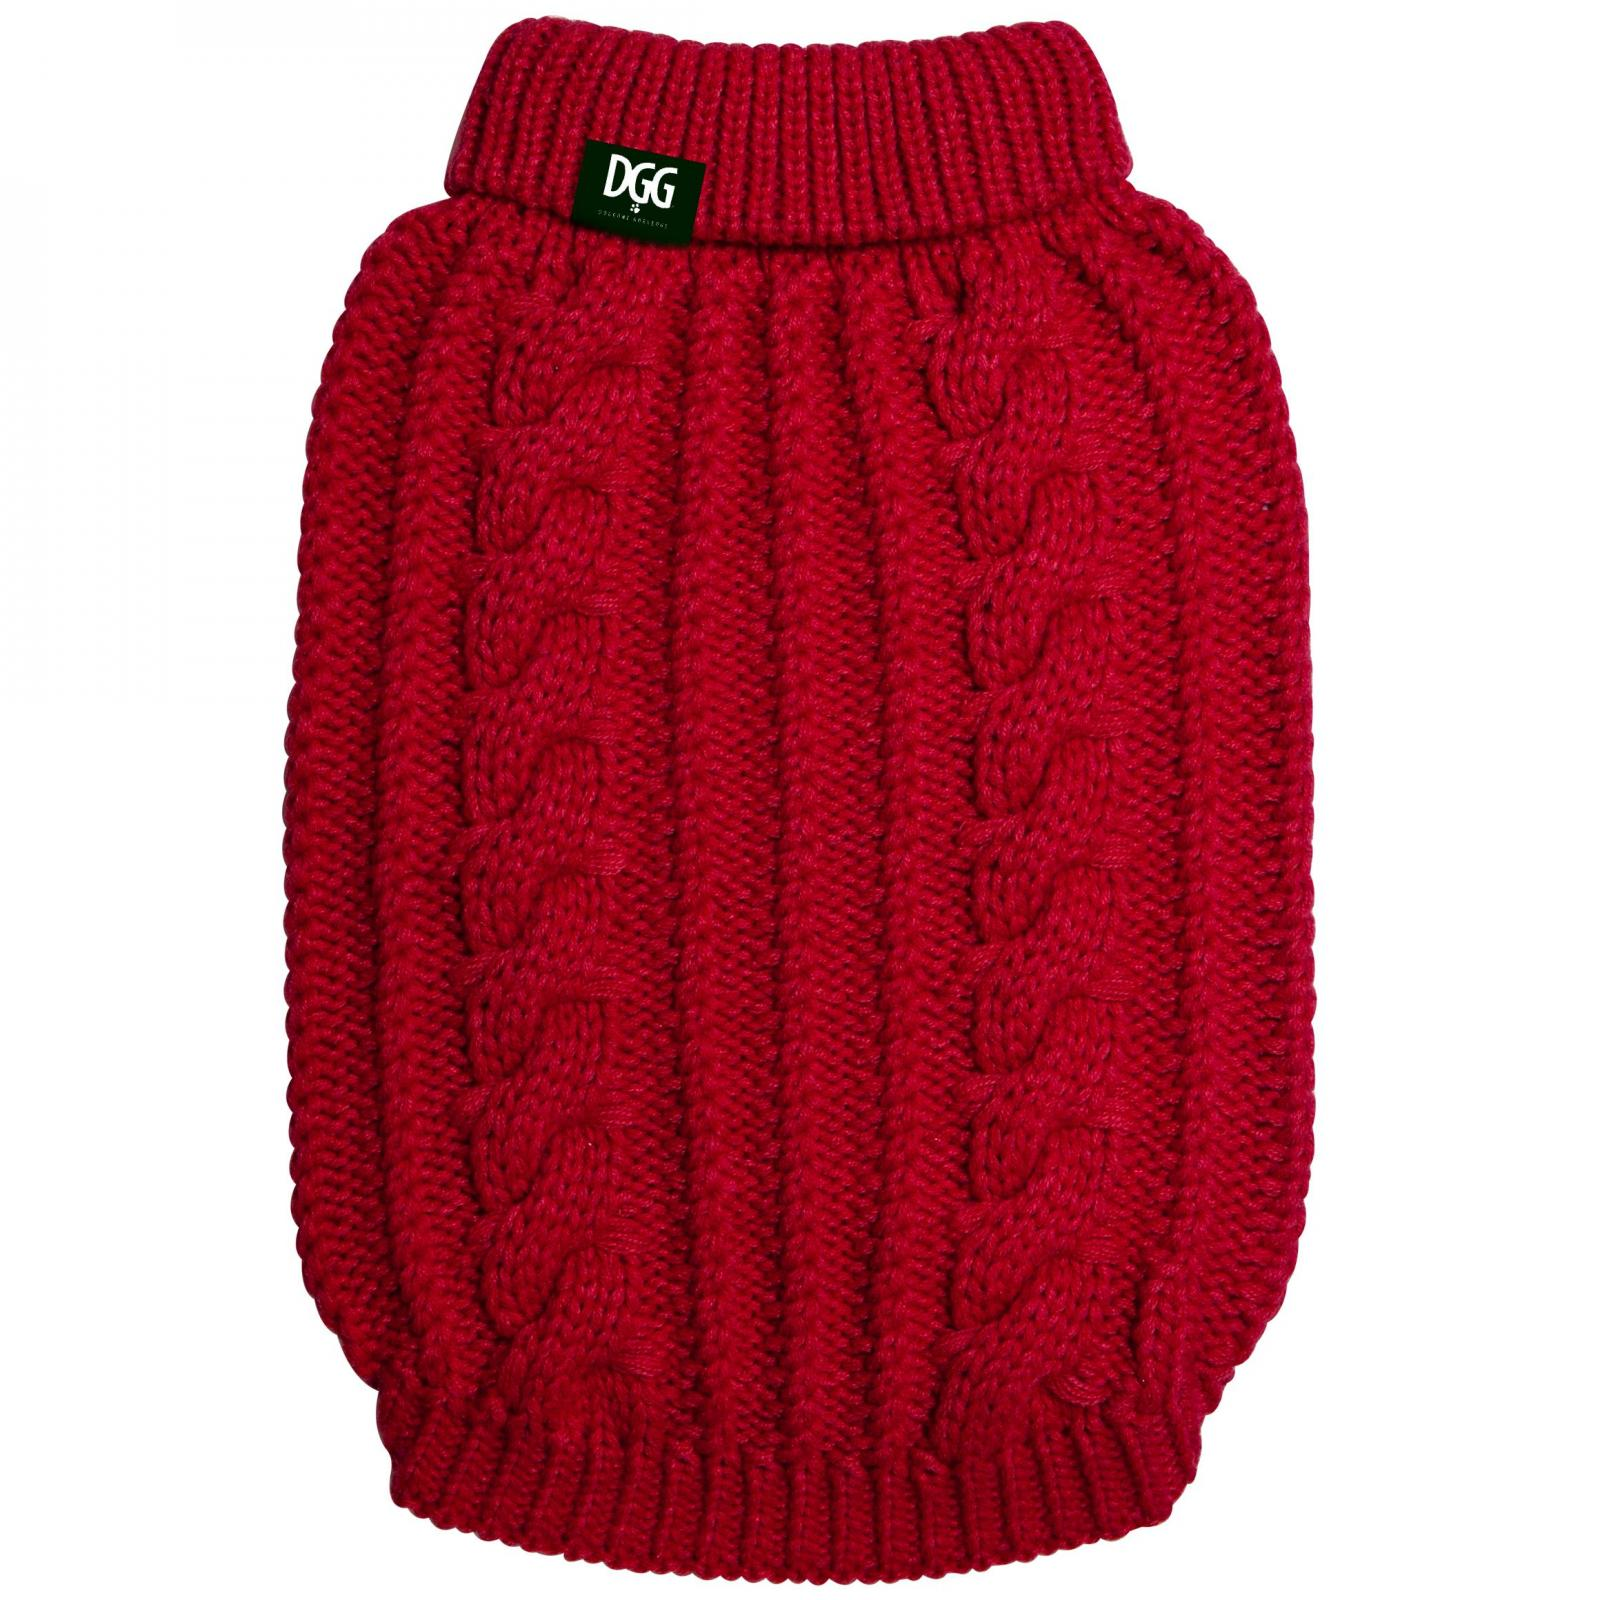 DGG DGG Chunky Cable Knit Red